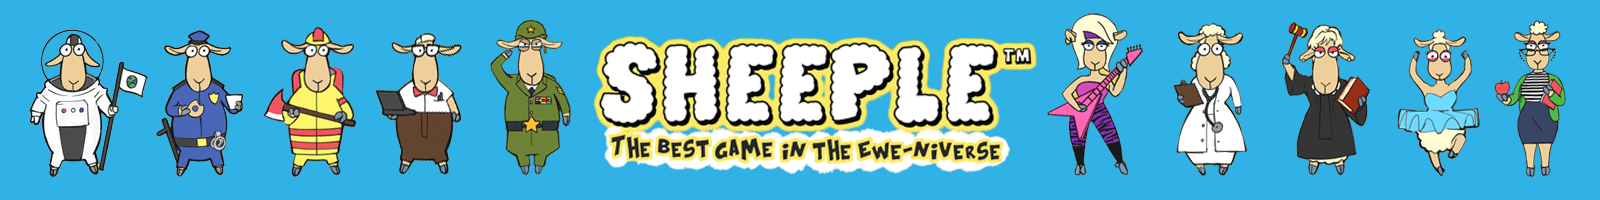 SHEEPLE: The Best Game in the Ewe-niverse family party board game